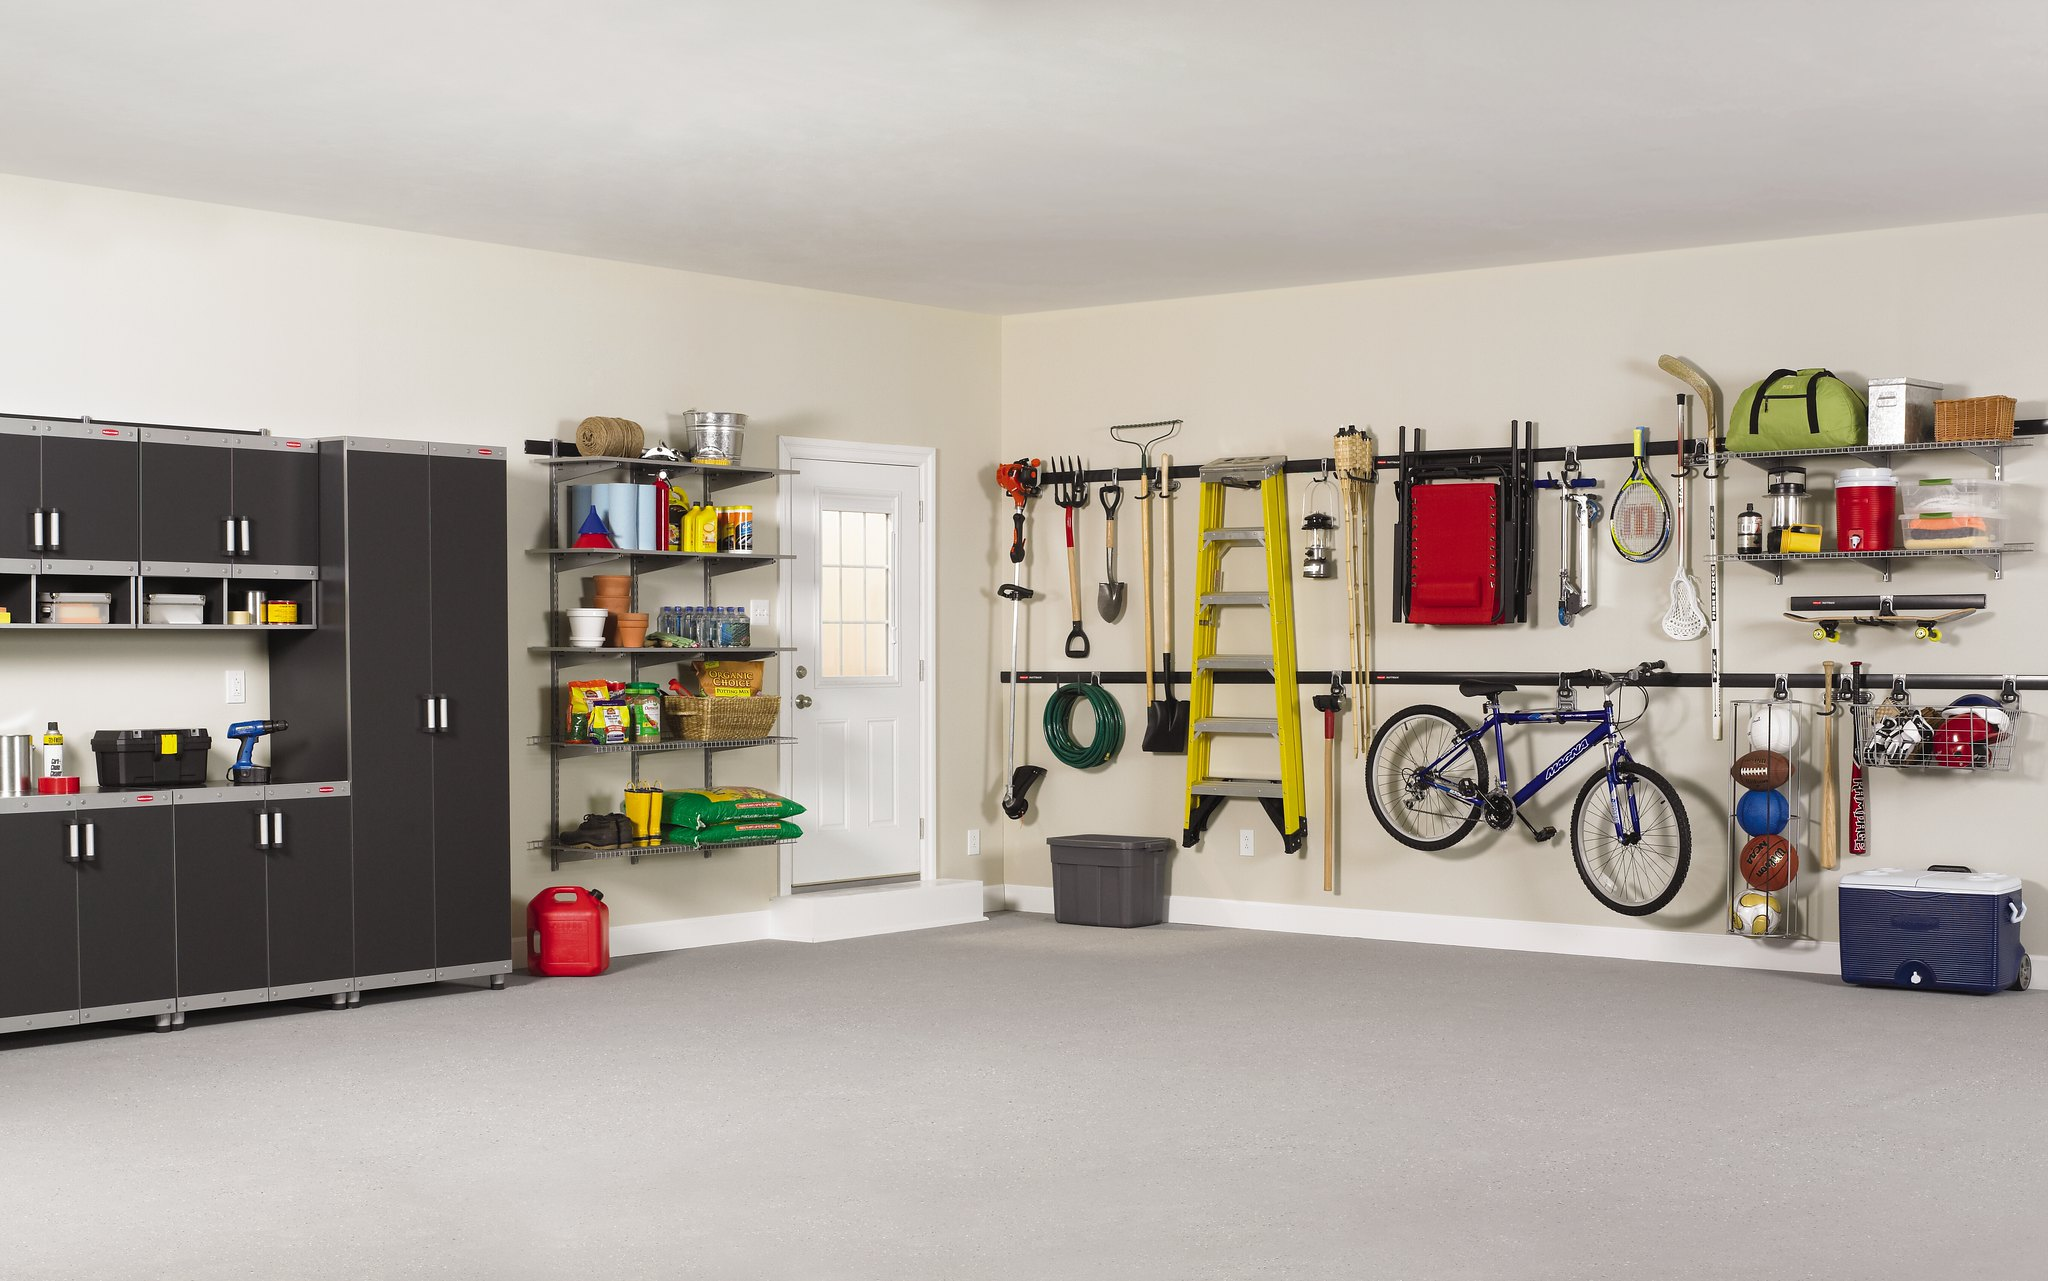 Garage Organization with Rubbermaid Products via flickr